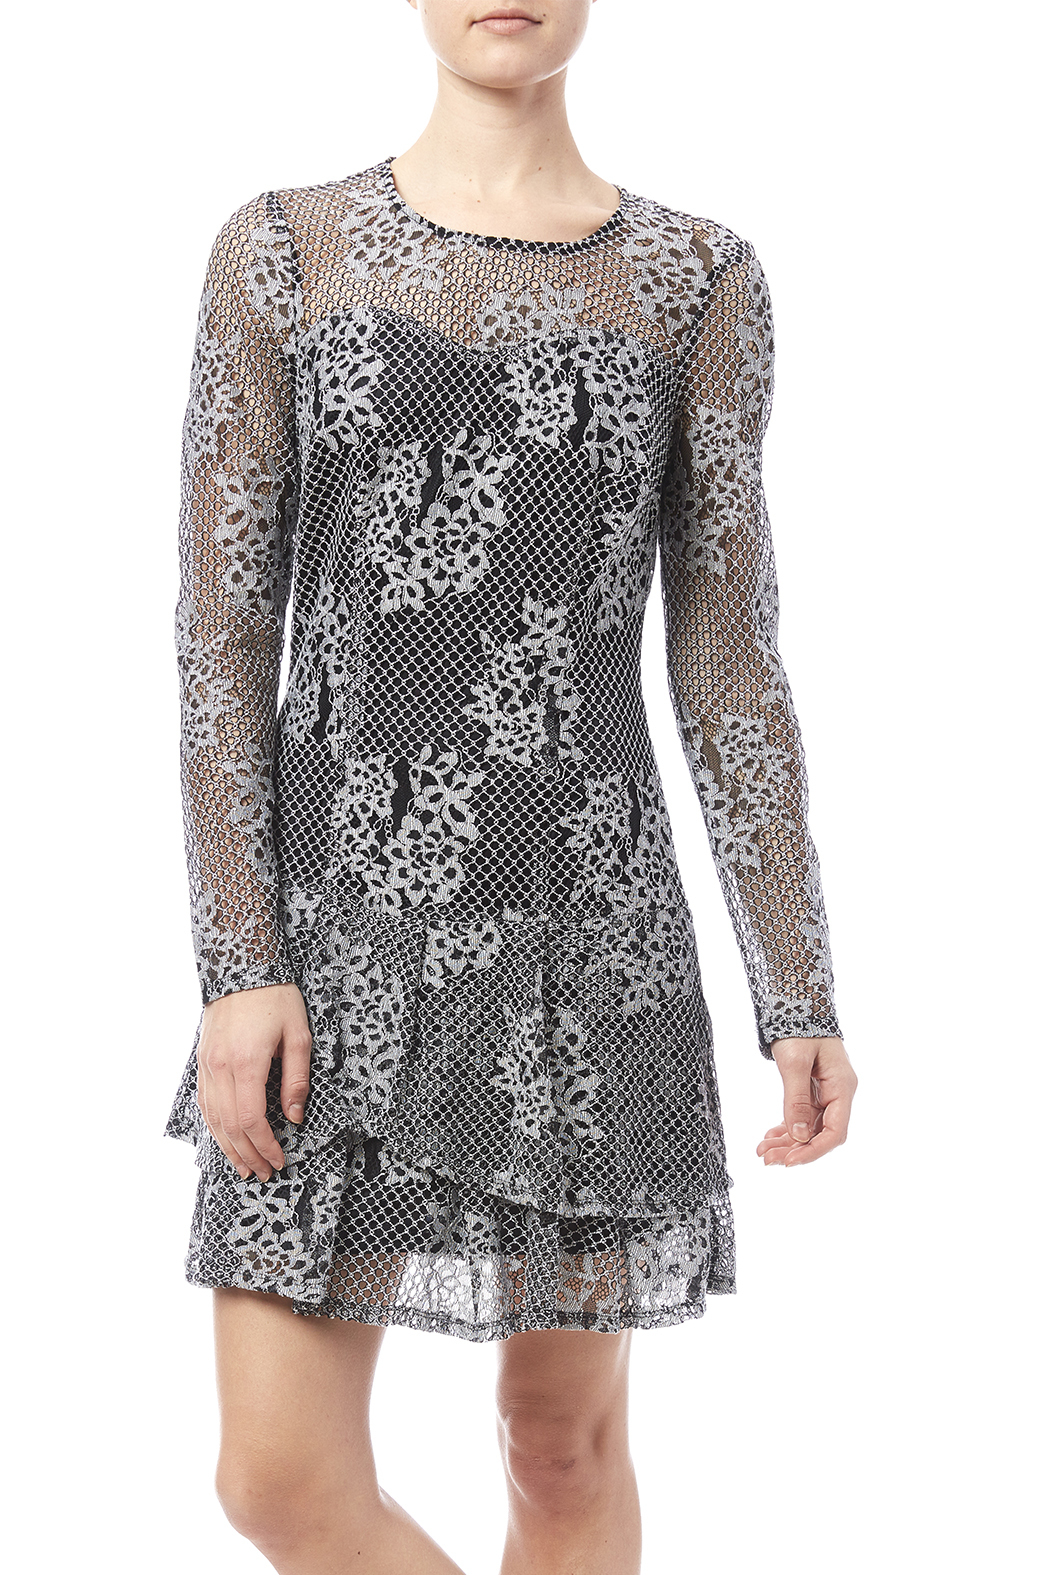 Kut from the Kloth Lace Flare Dress - Main Image